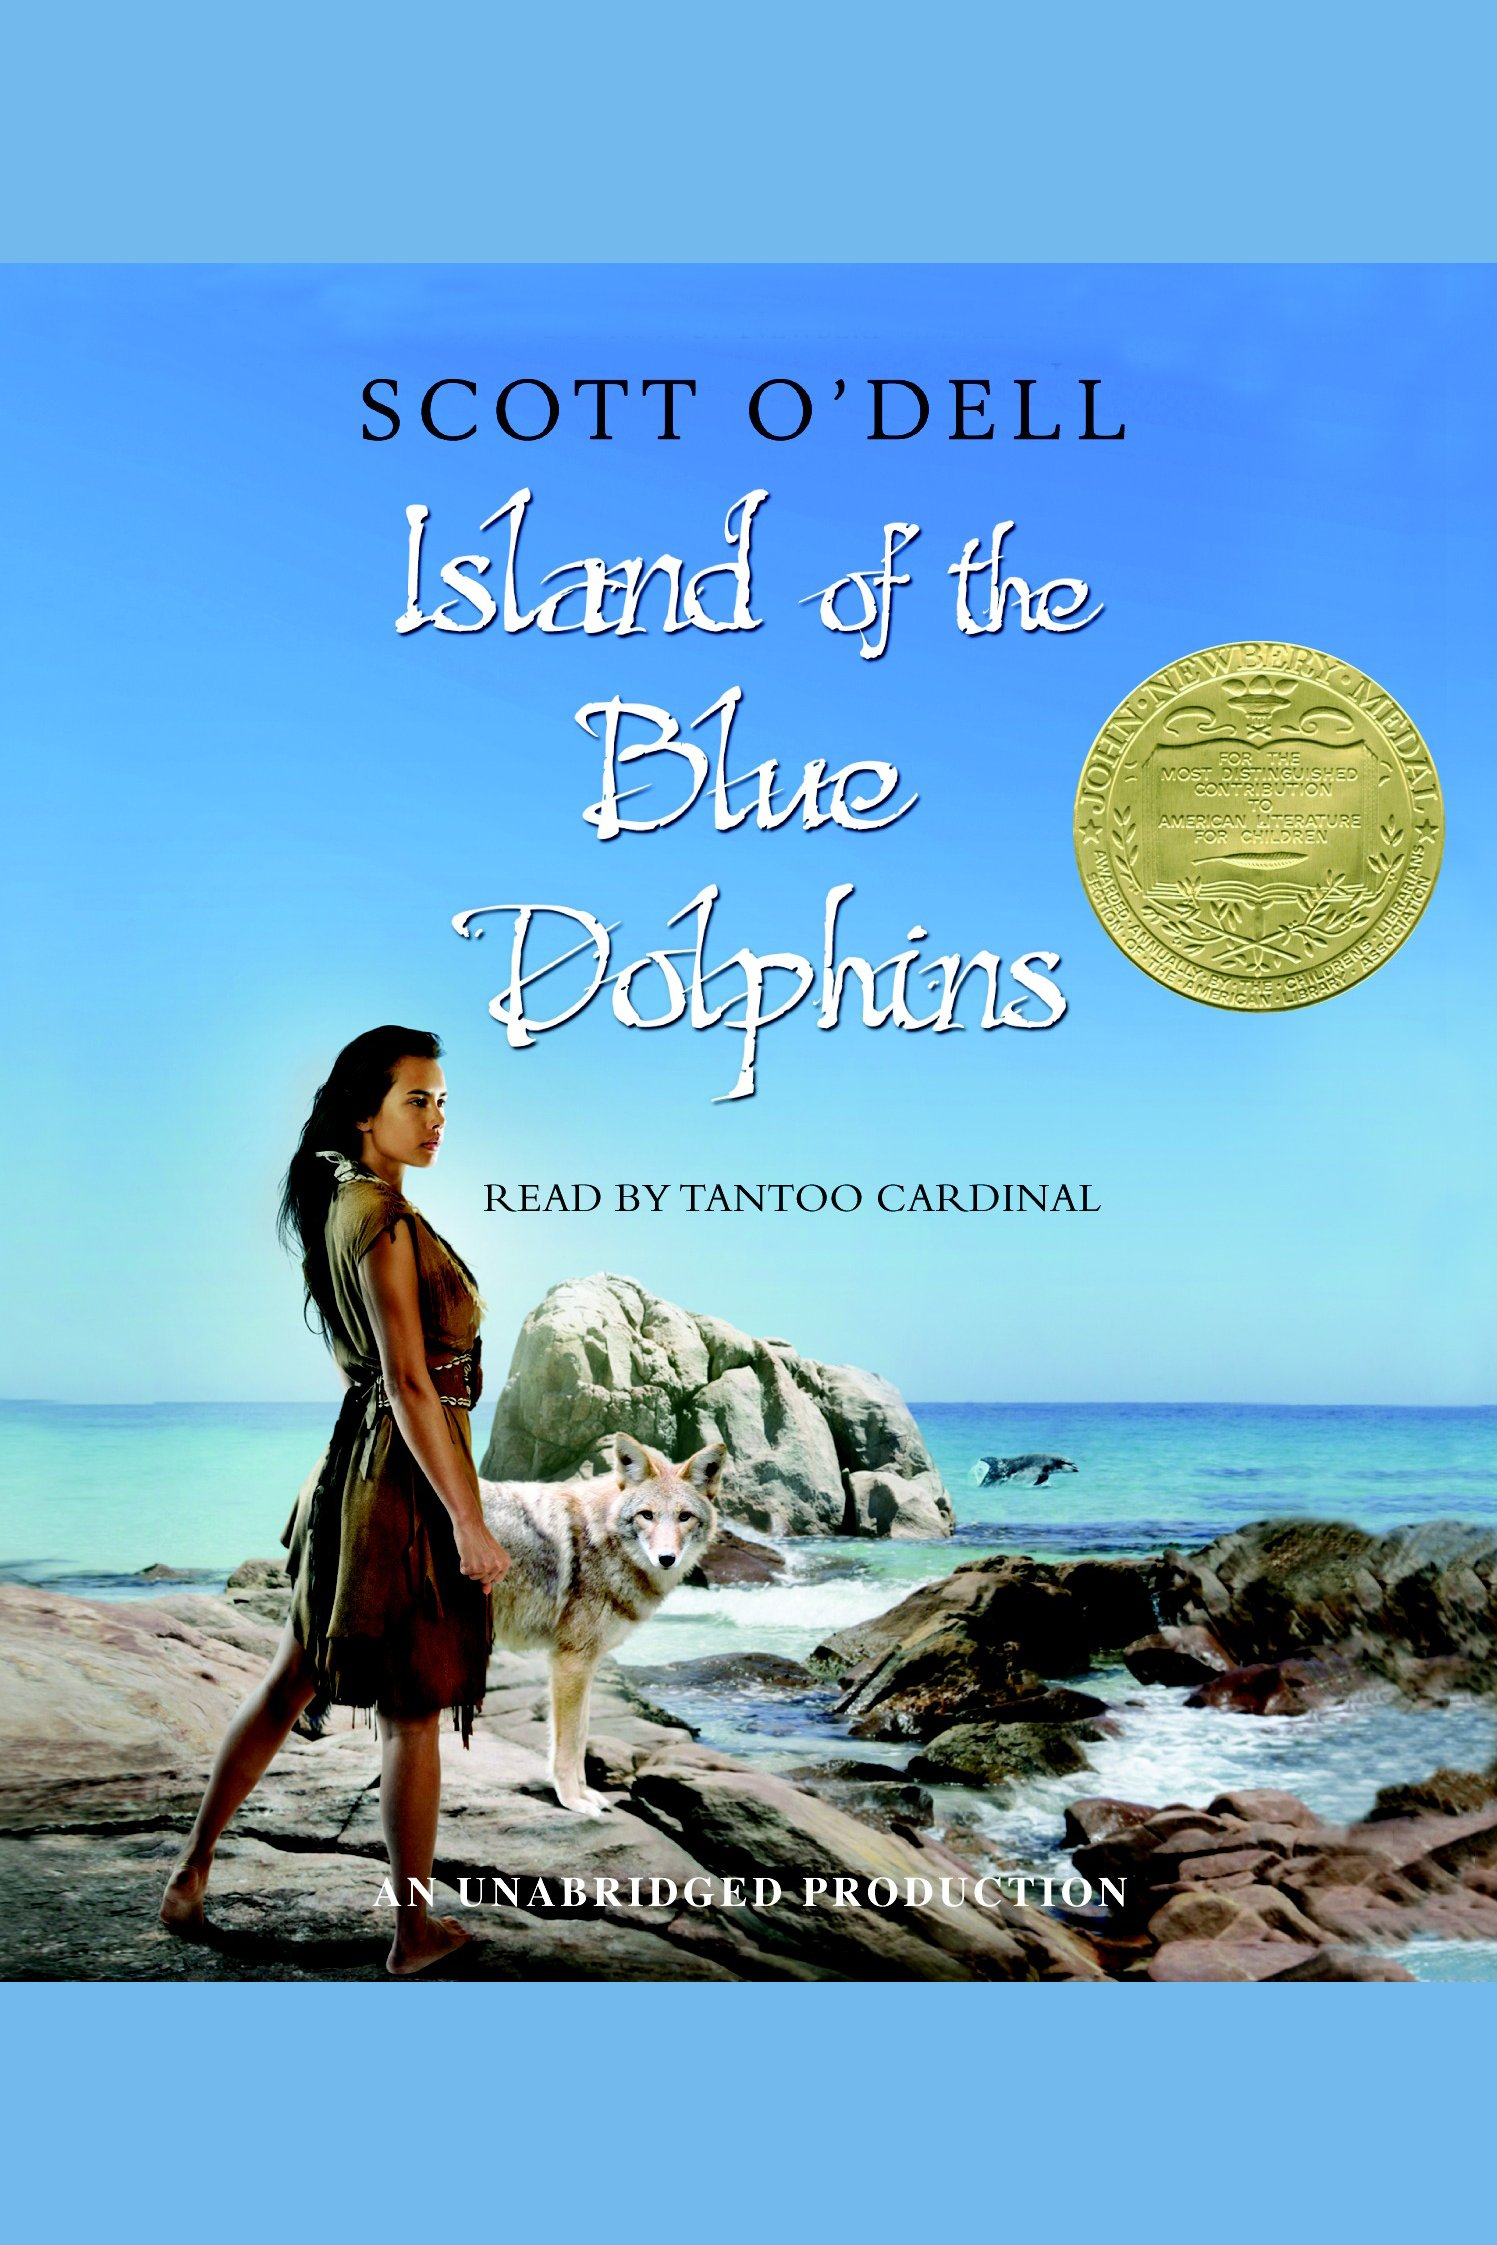 Island of the Blue Dolphins cover image